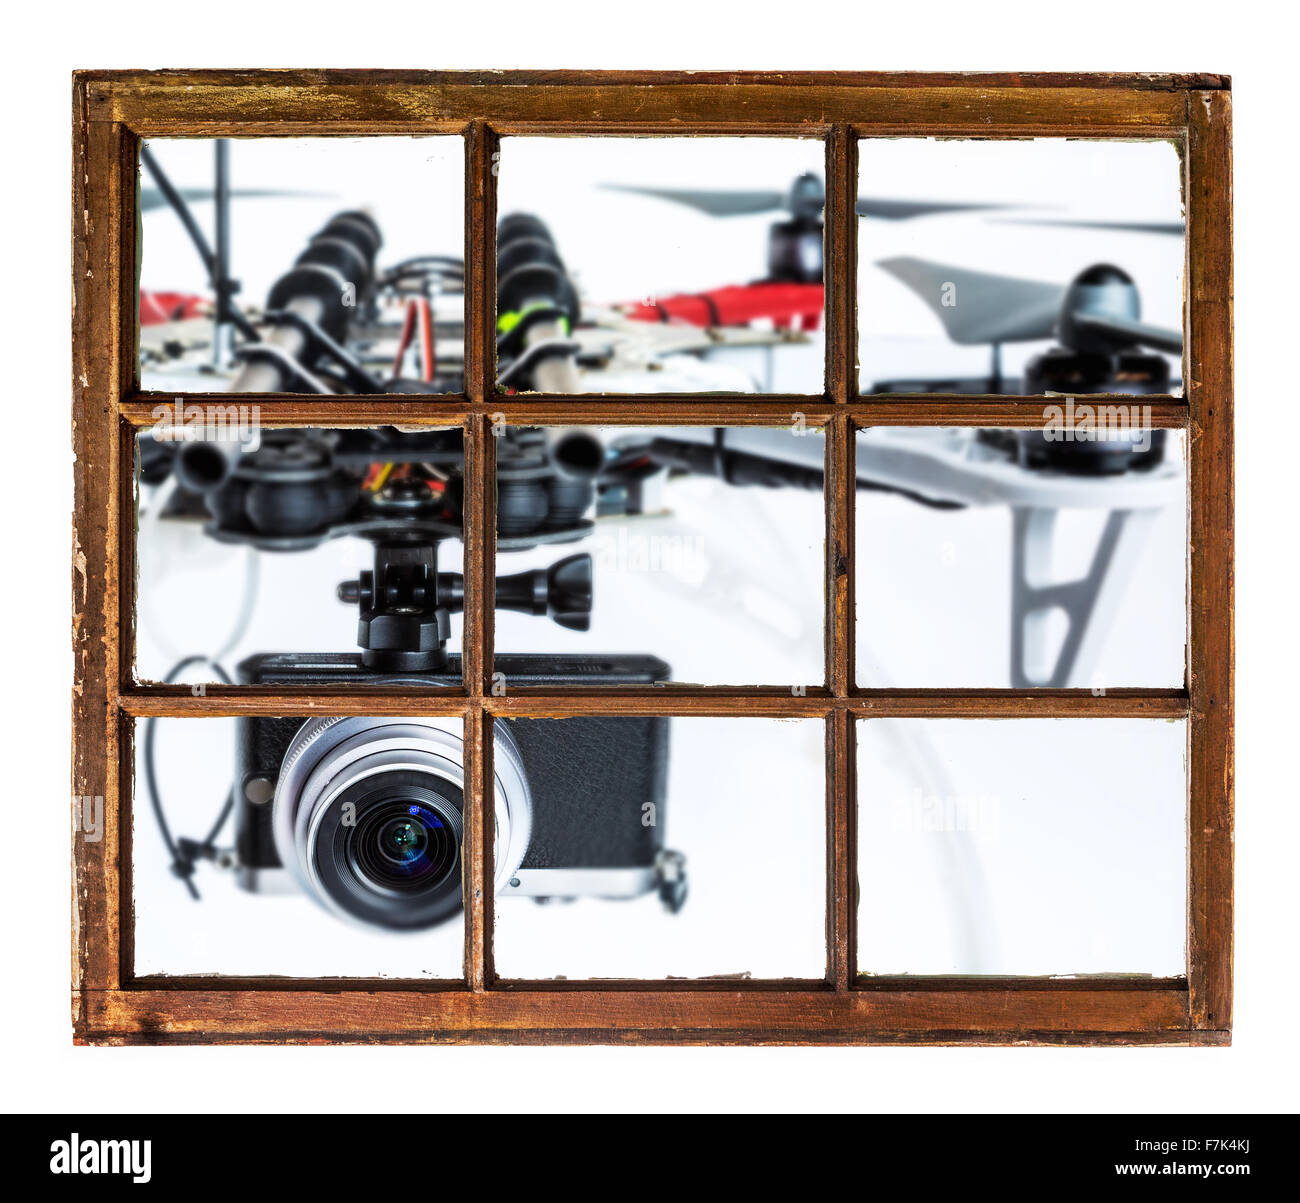 drones and privacy invasion concept - blurred oversized drone flying with a camera outside the window - Stock Image